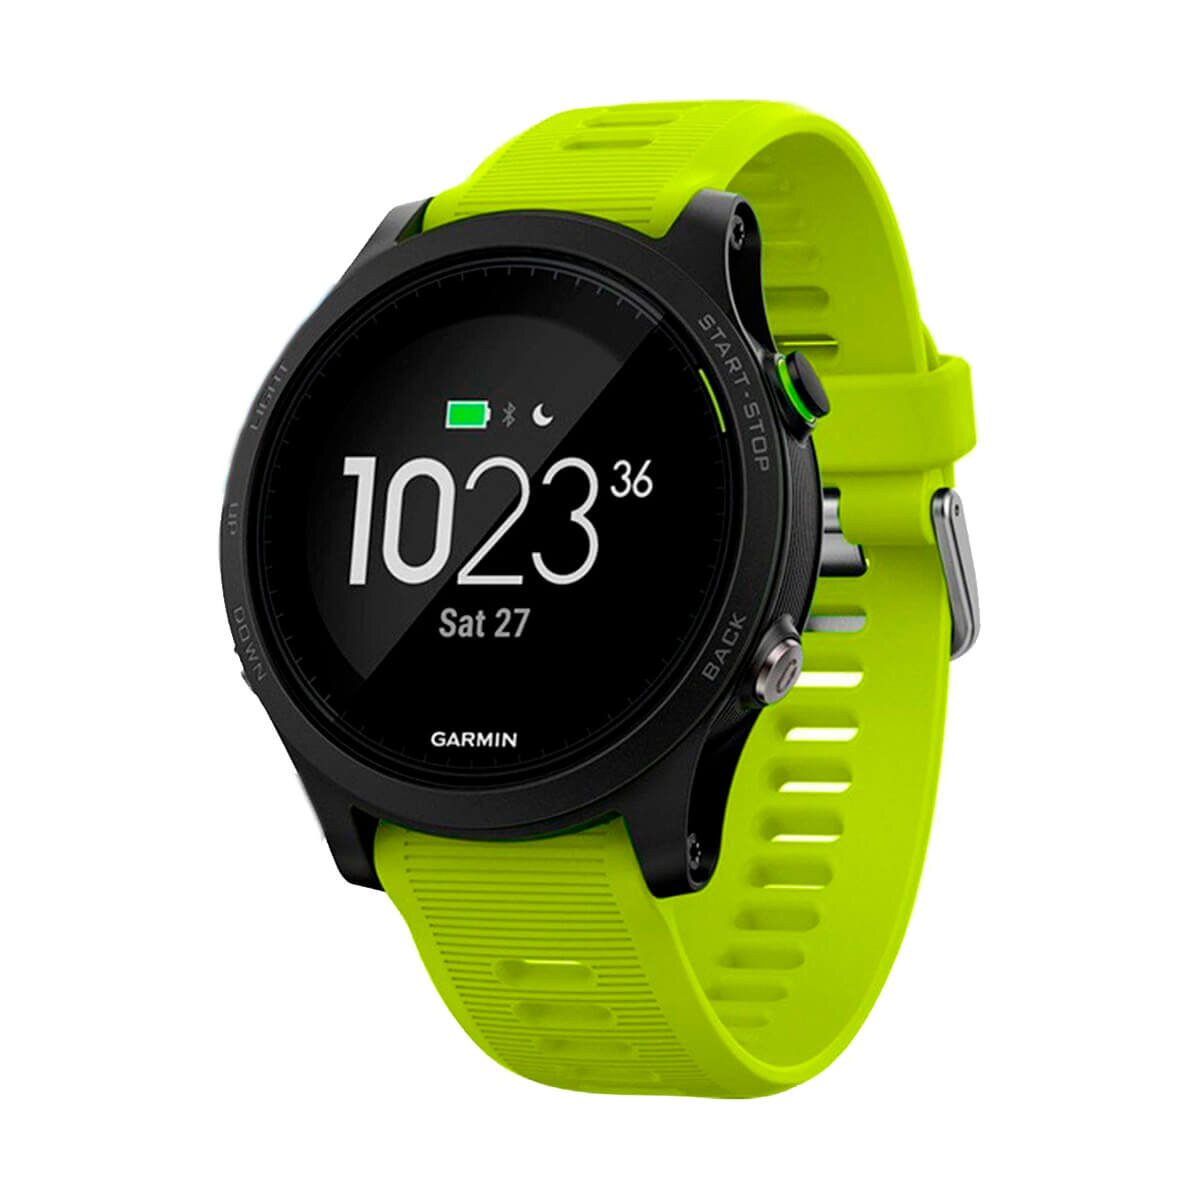 Спортивные часы GARMIN Forerunner 935 Black/Green (010-01746-07/21)